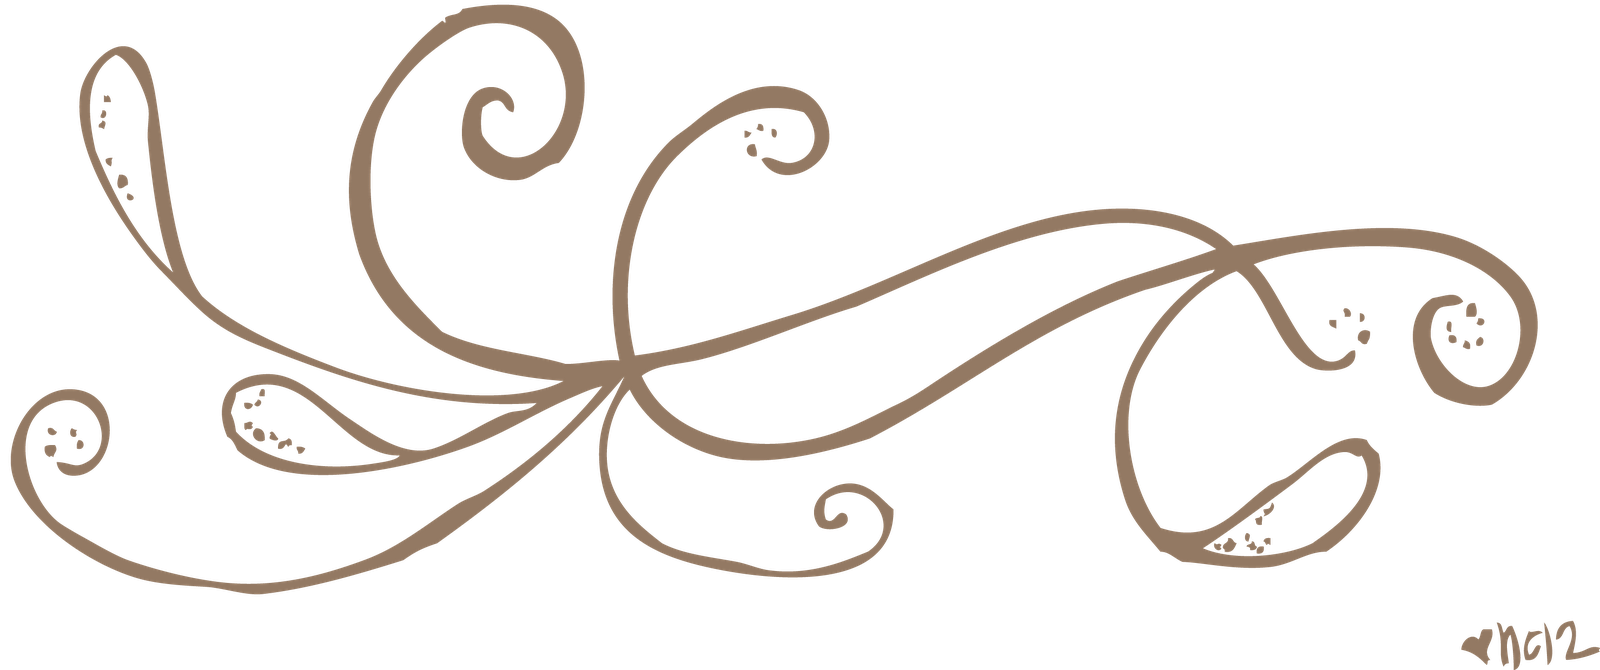 Simple Line Art Designs Png : Teal swirl designs clipart suggest